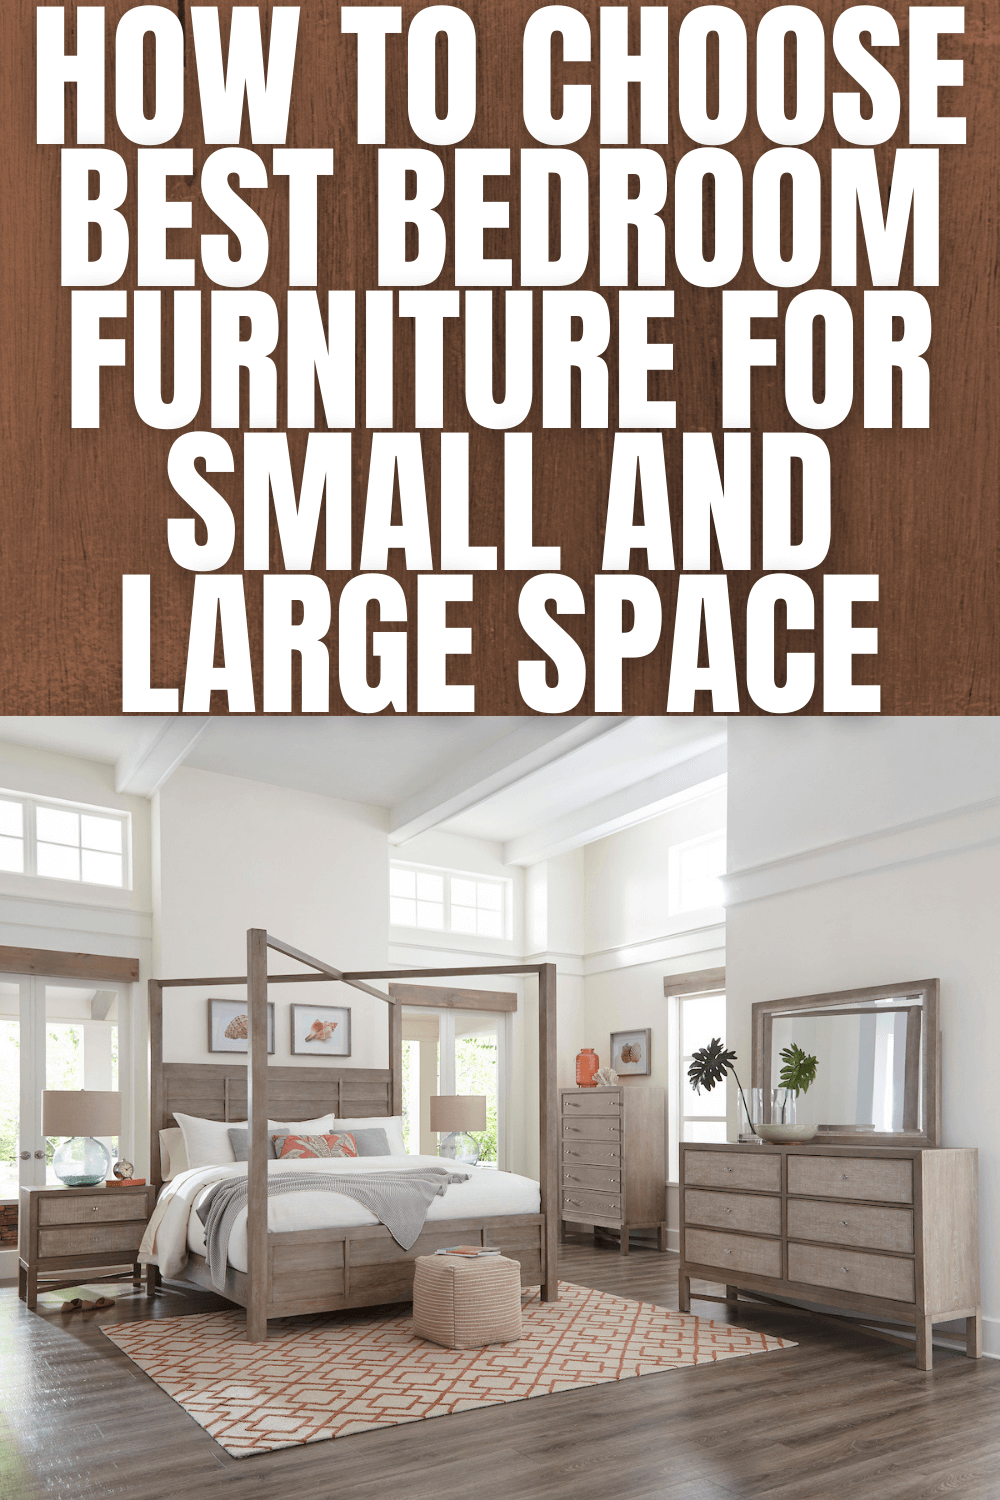 HOW TO CHOOSE BEST BEDROOM FURNITURE FOR SMALL AND LARGE SPACE